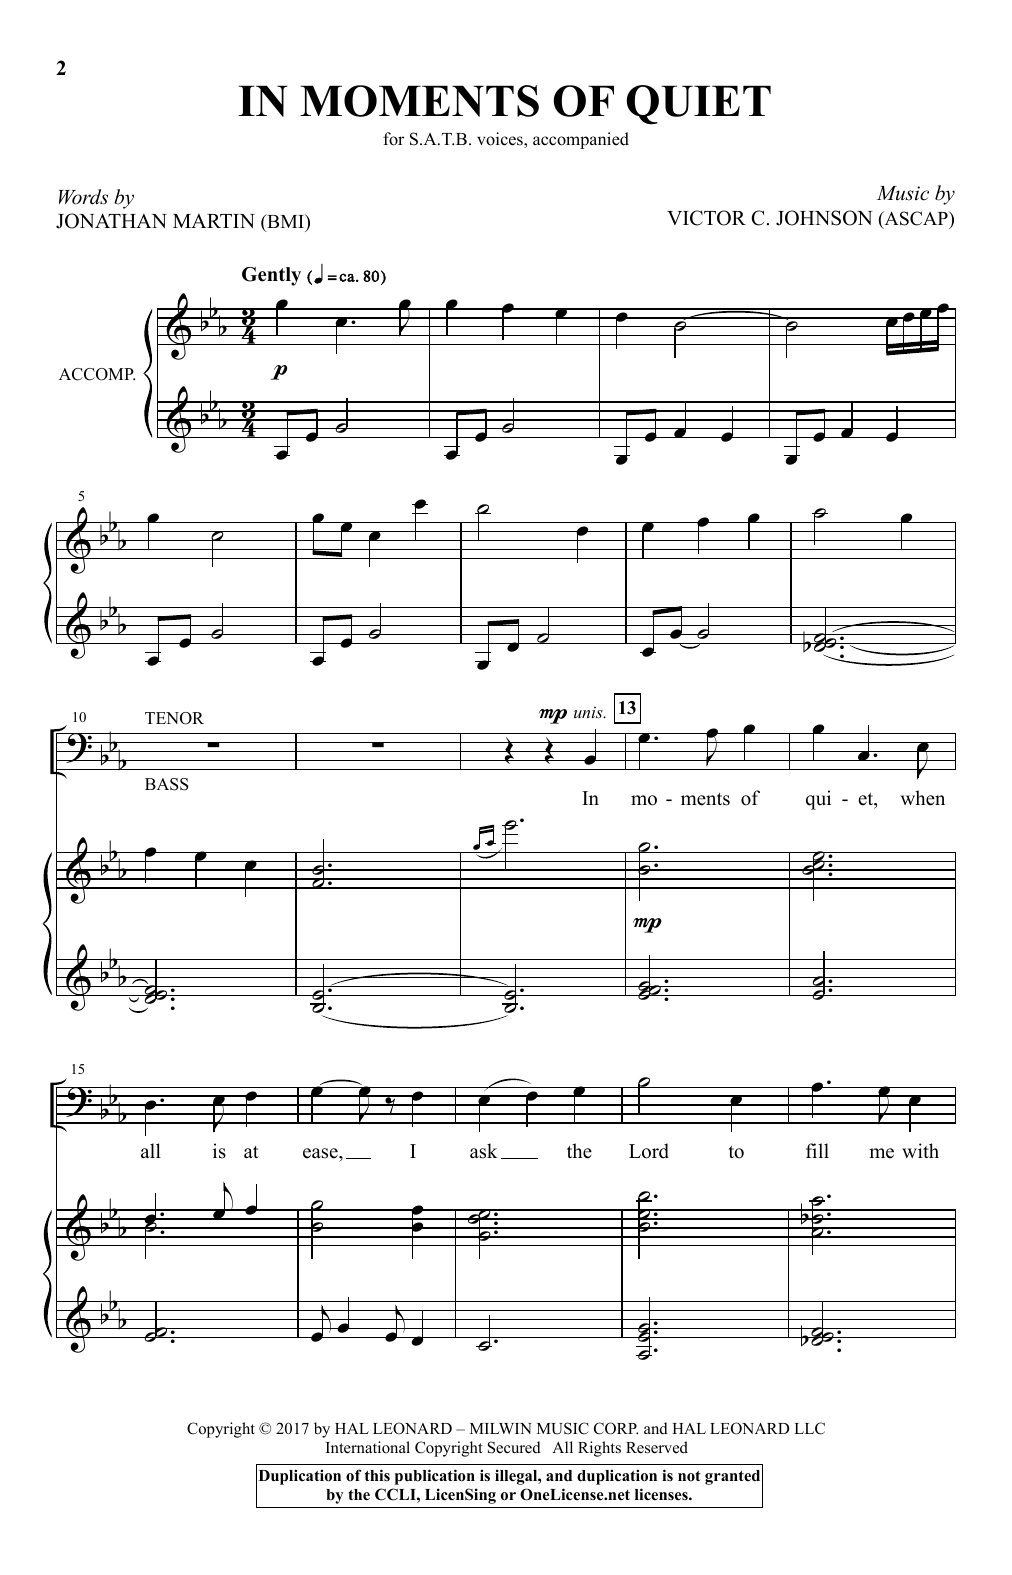 Victor C. Johnson In Moments Of Quiet sheet music notes and chords. Download Printable PDF.